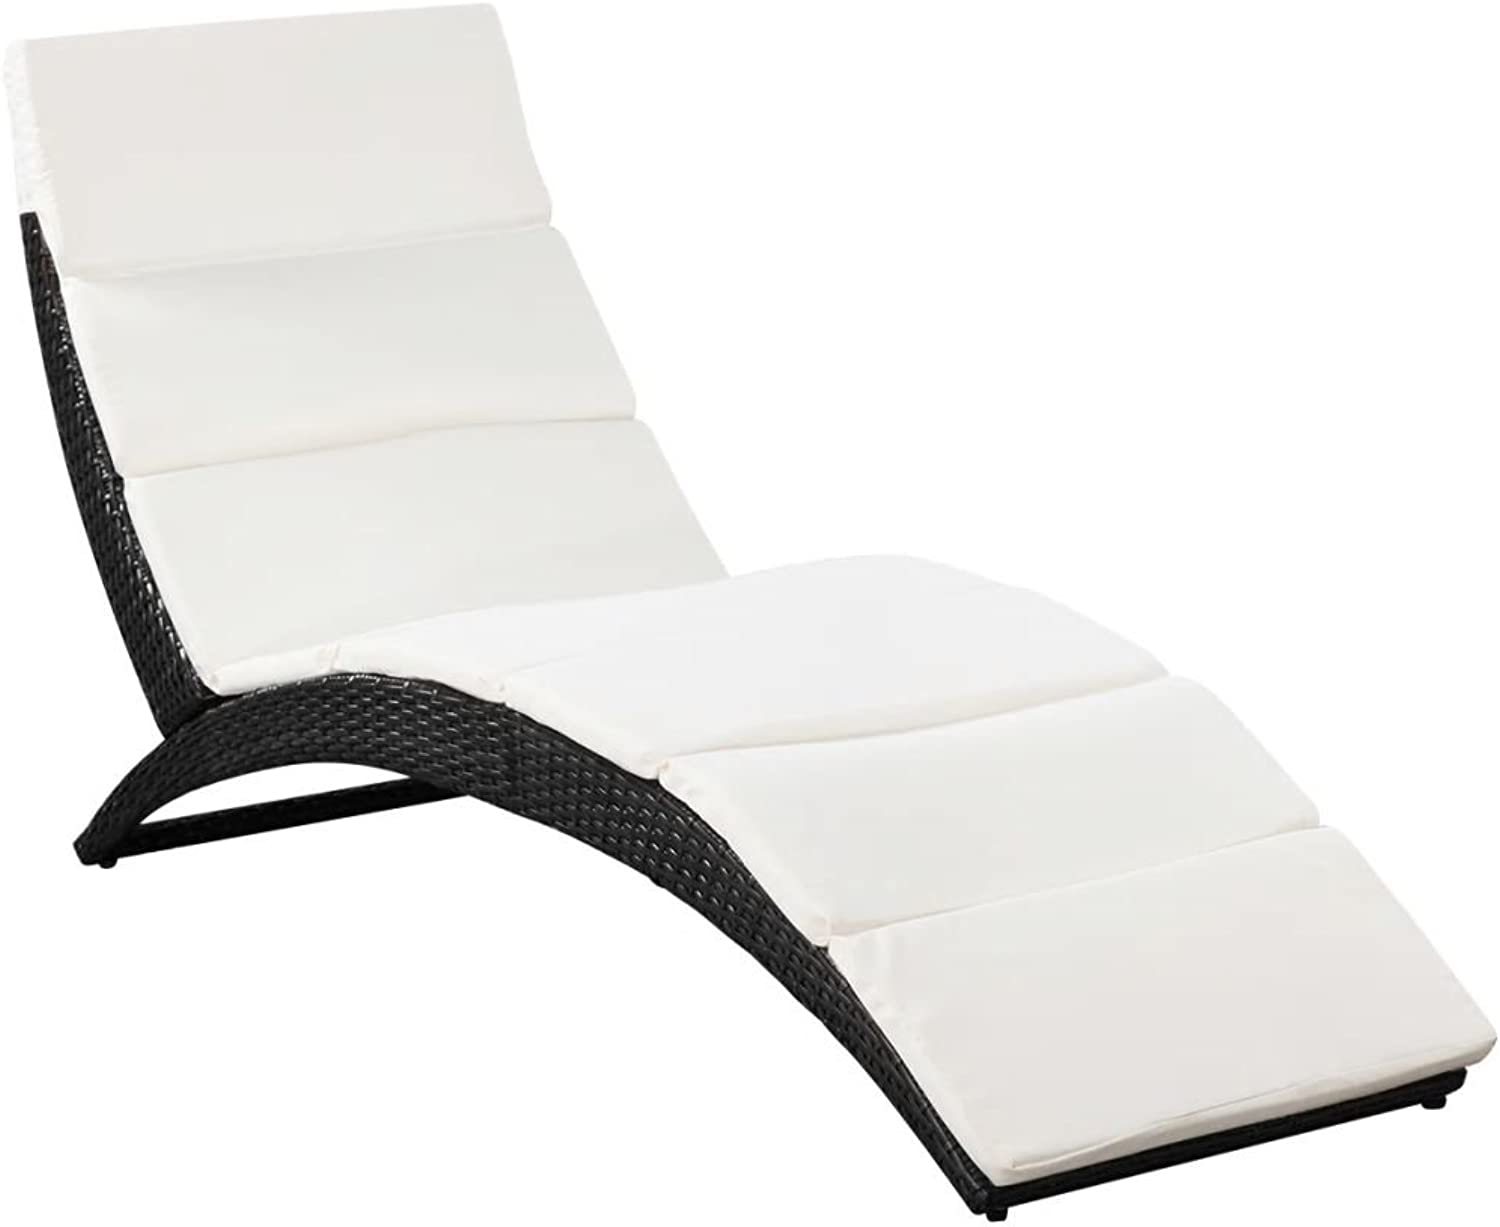 Festnight Folding Sunlounger Outdoor Sun Bed with Removable Cushion Pool Side Lounger Poly Rattan Black